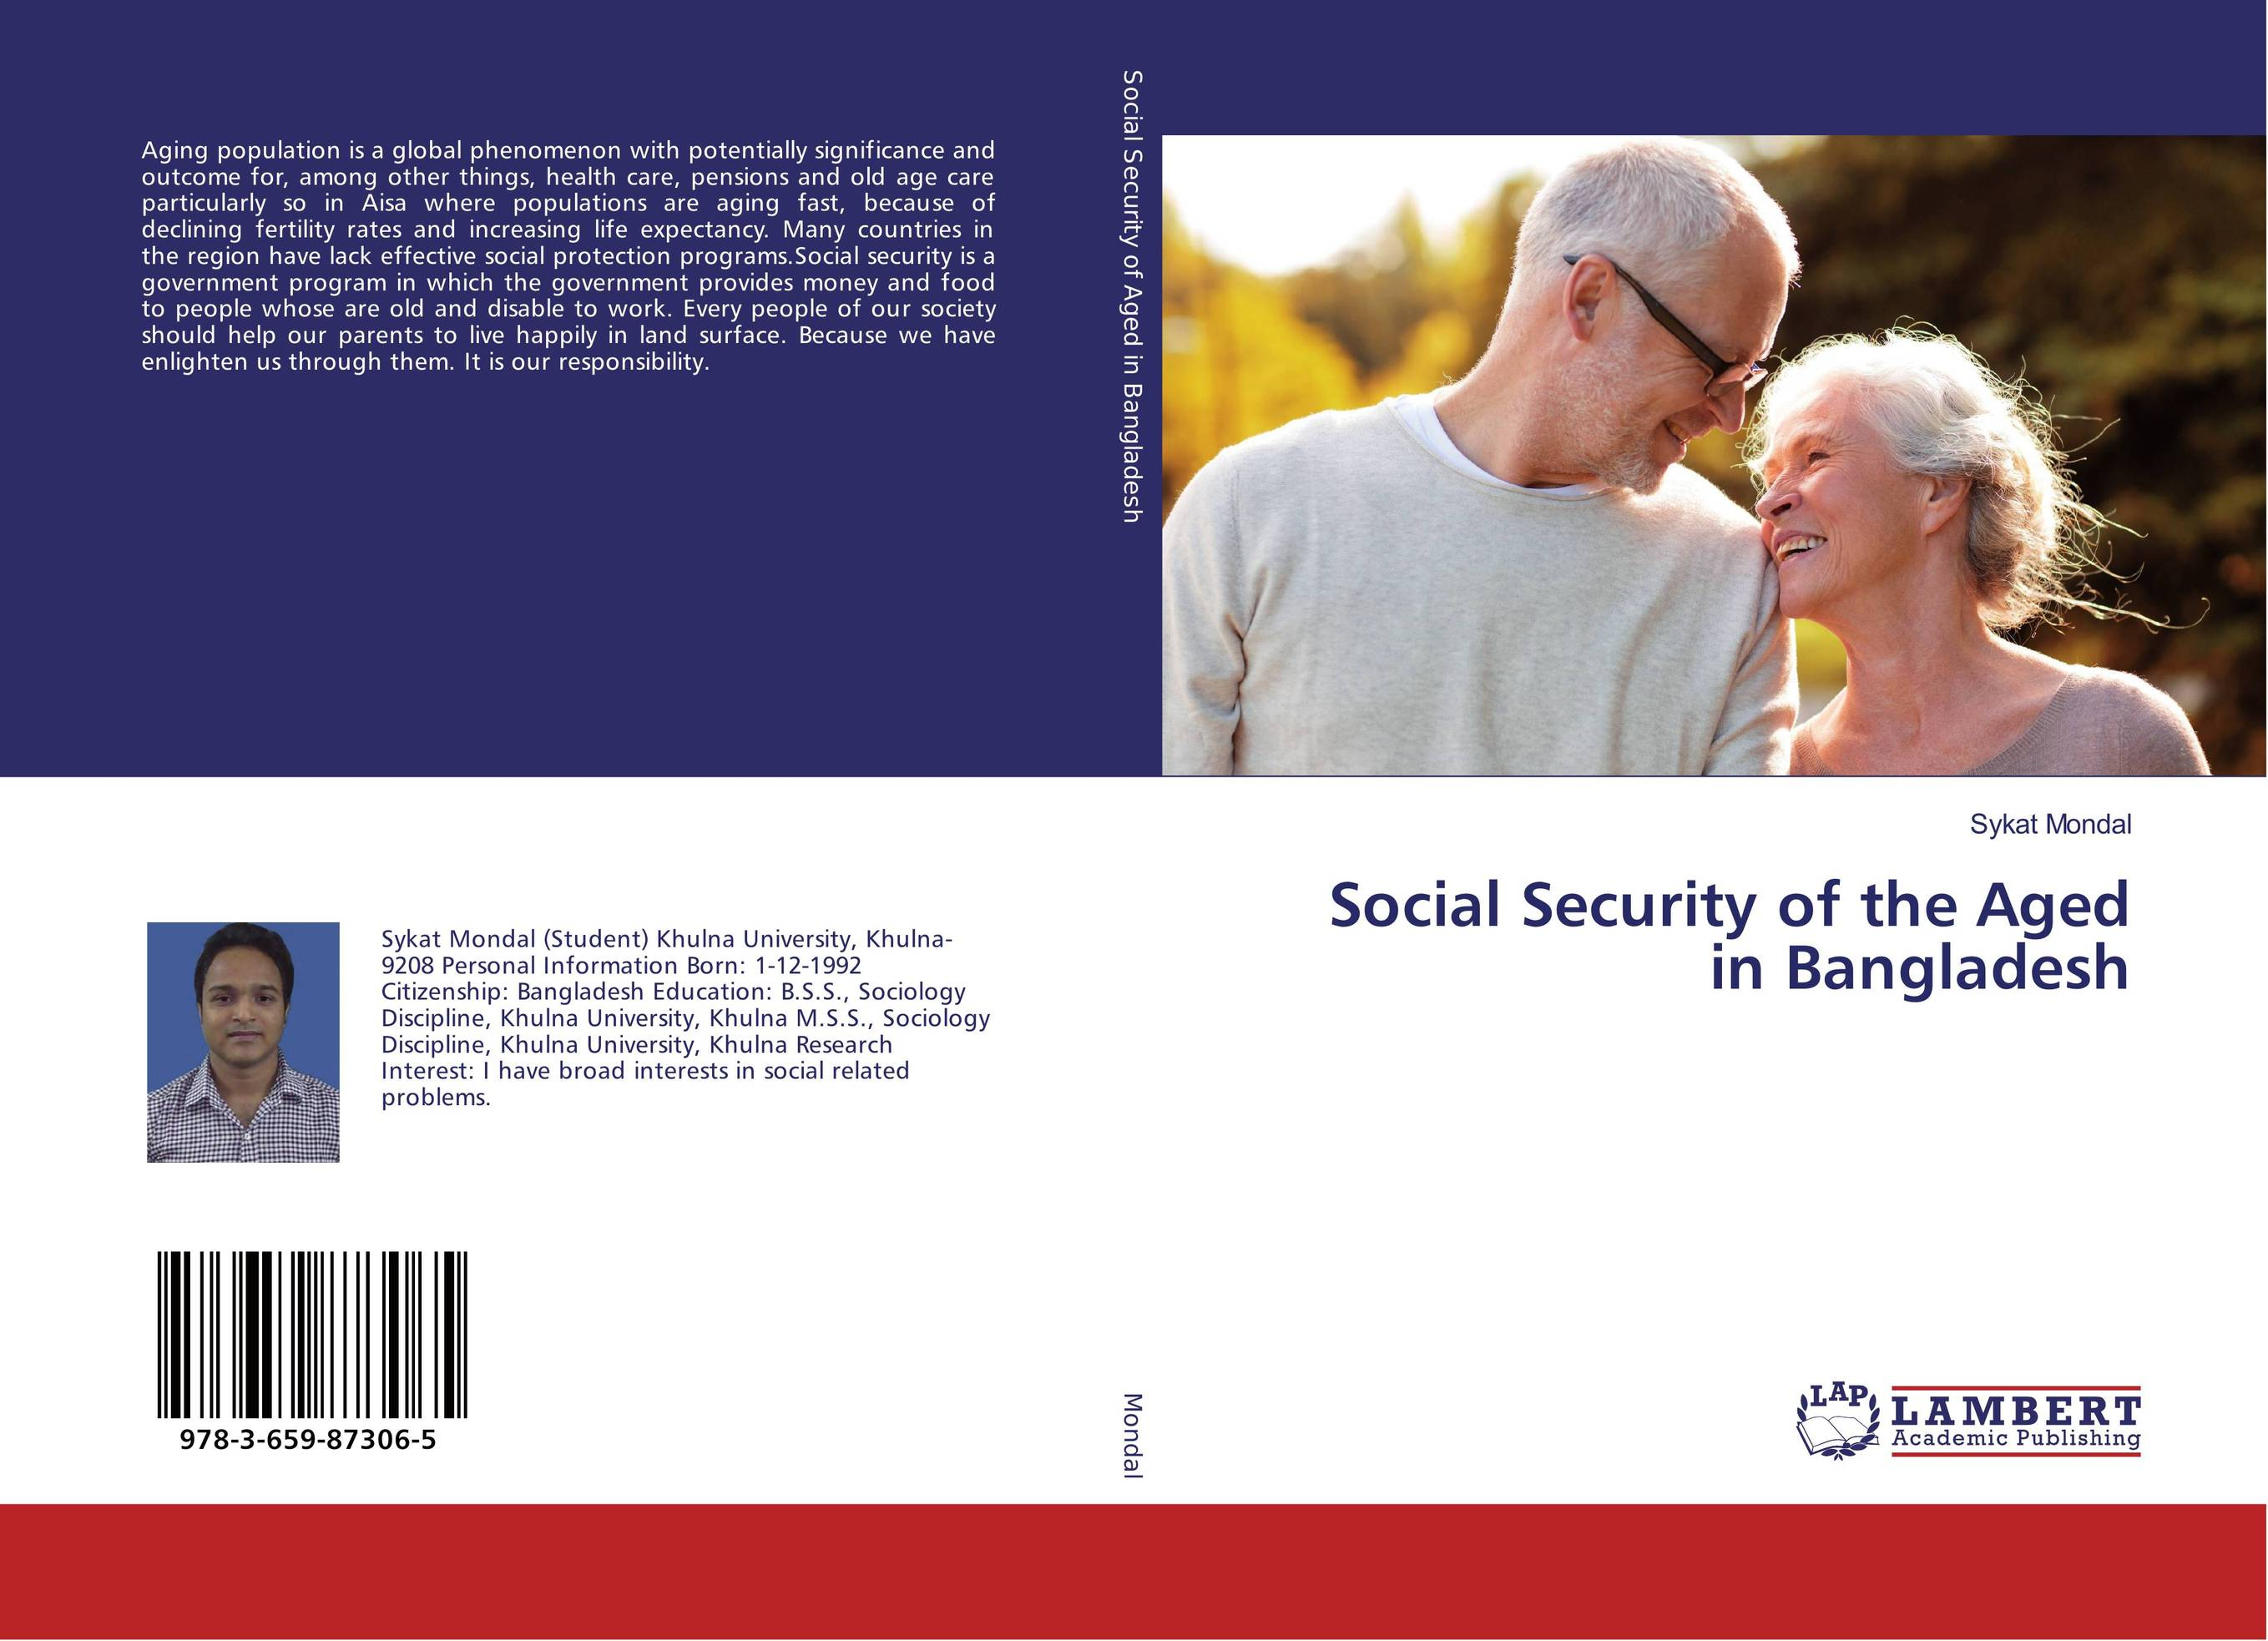 Social Security of the Aged in Bangladesh belousov a security features of banknotes and other documents methods of authentication manual денежные билеты бланки ценных бумаг и документов